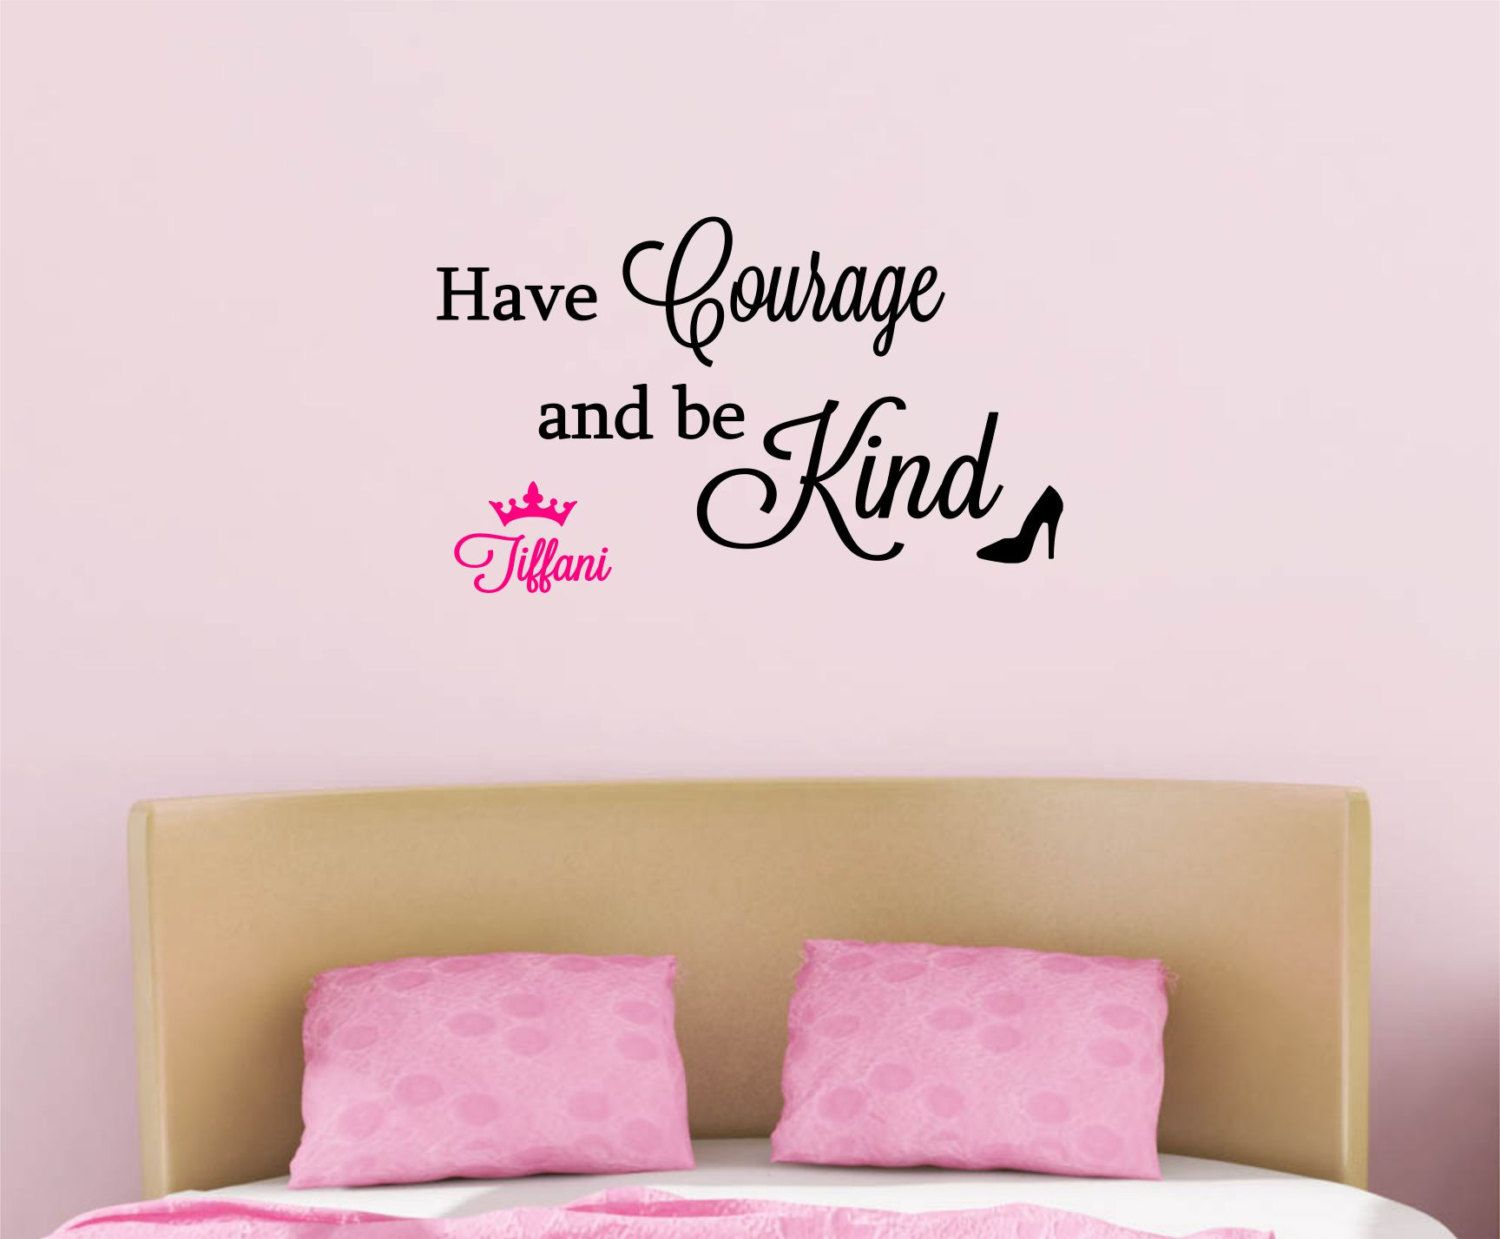 Have courage and be kind custom vinyl vinyl wall art cinderella